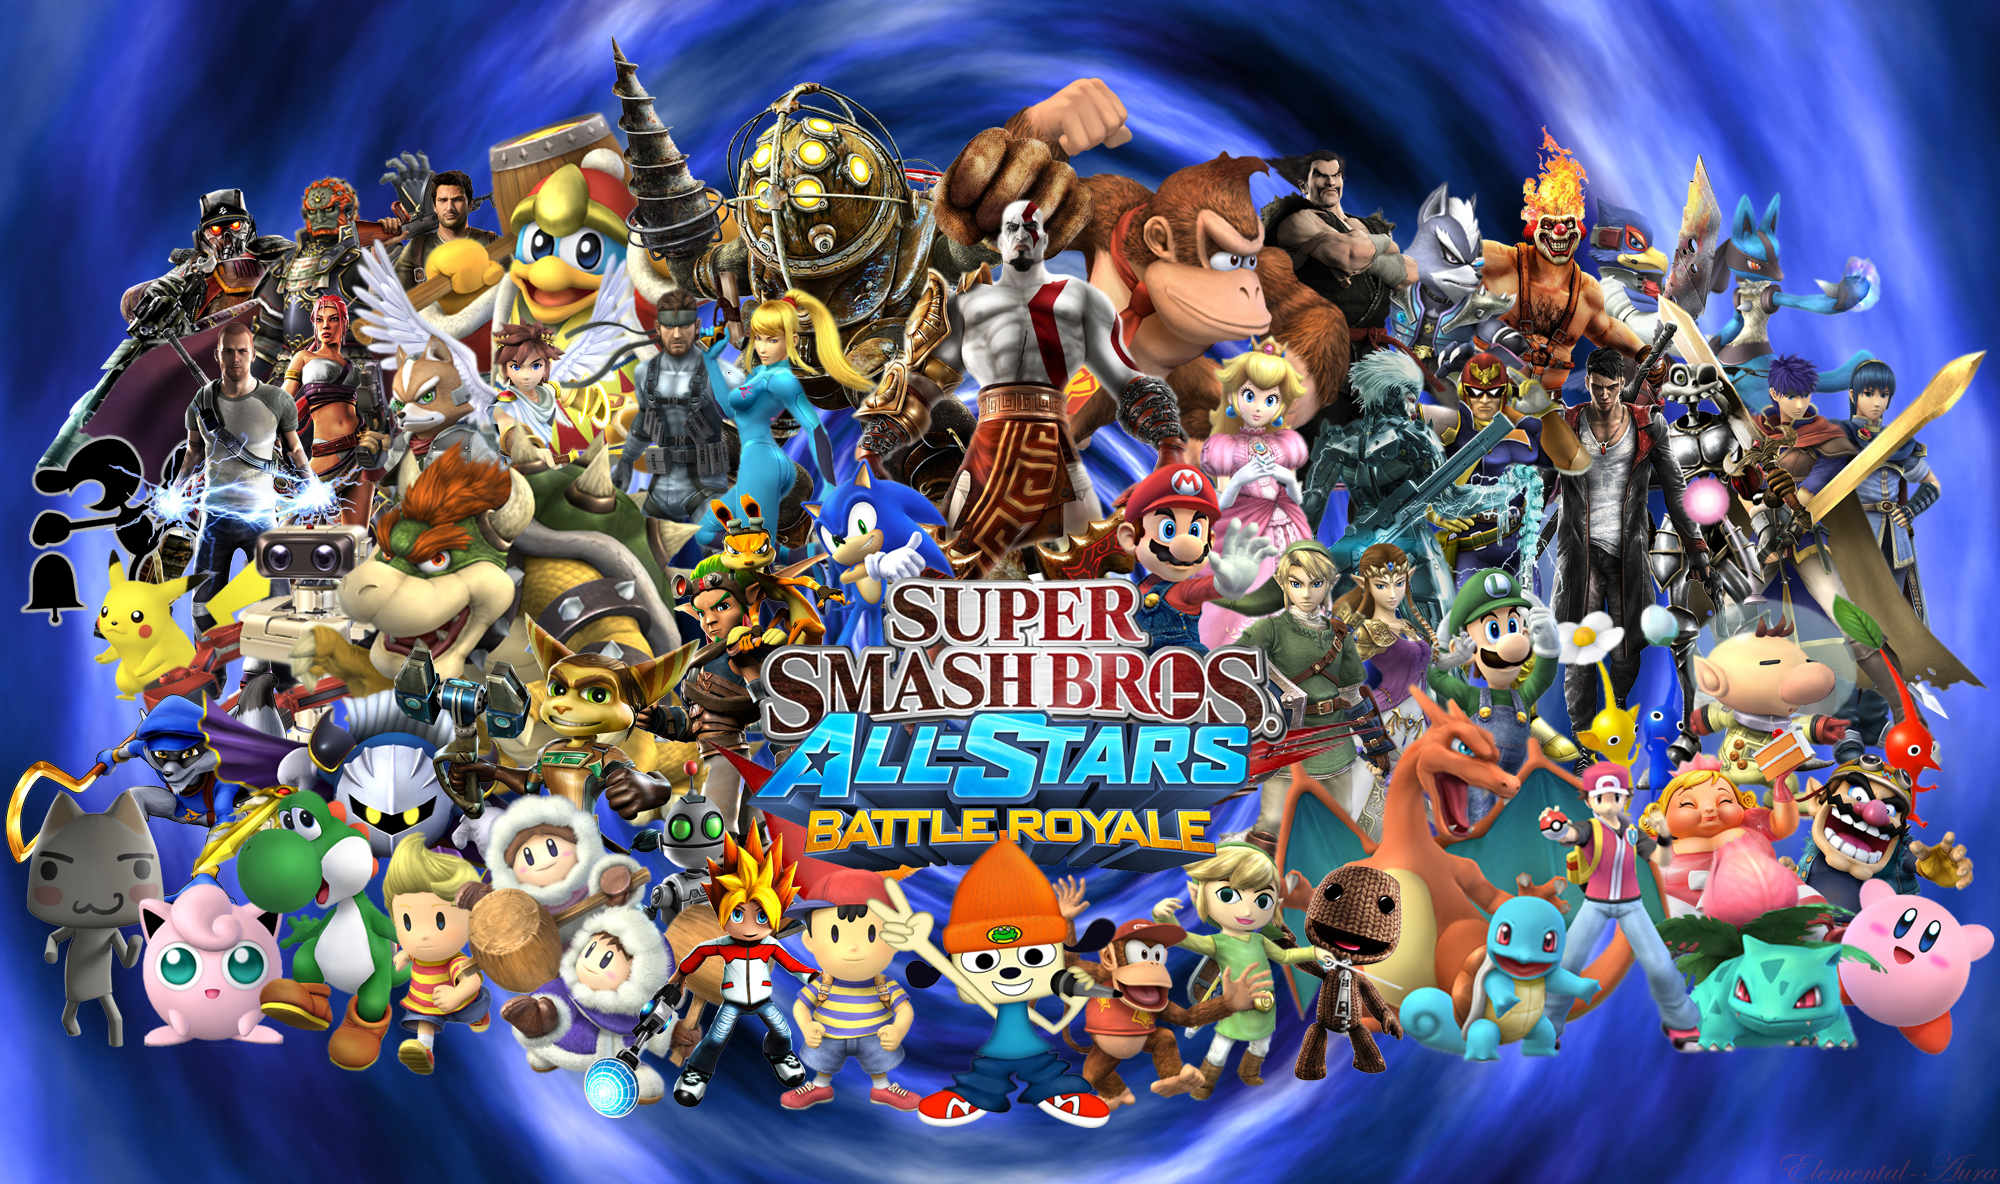 Super Smash Bros. Brawl Super Smash Bros All-Stars Battle Royal!